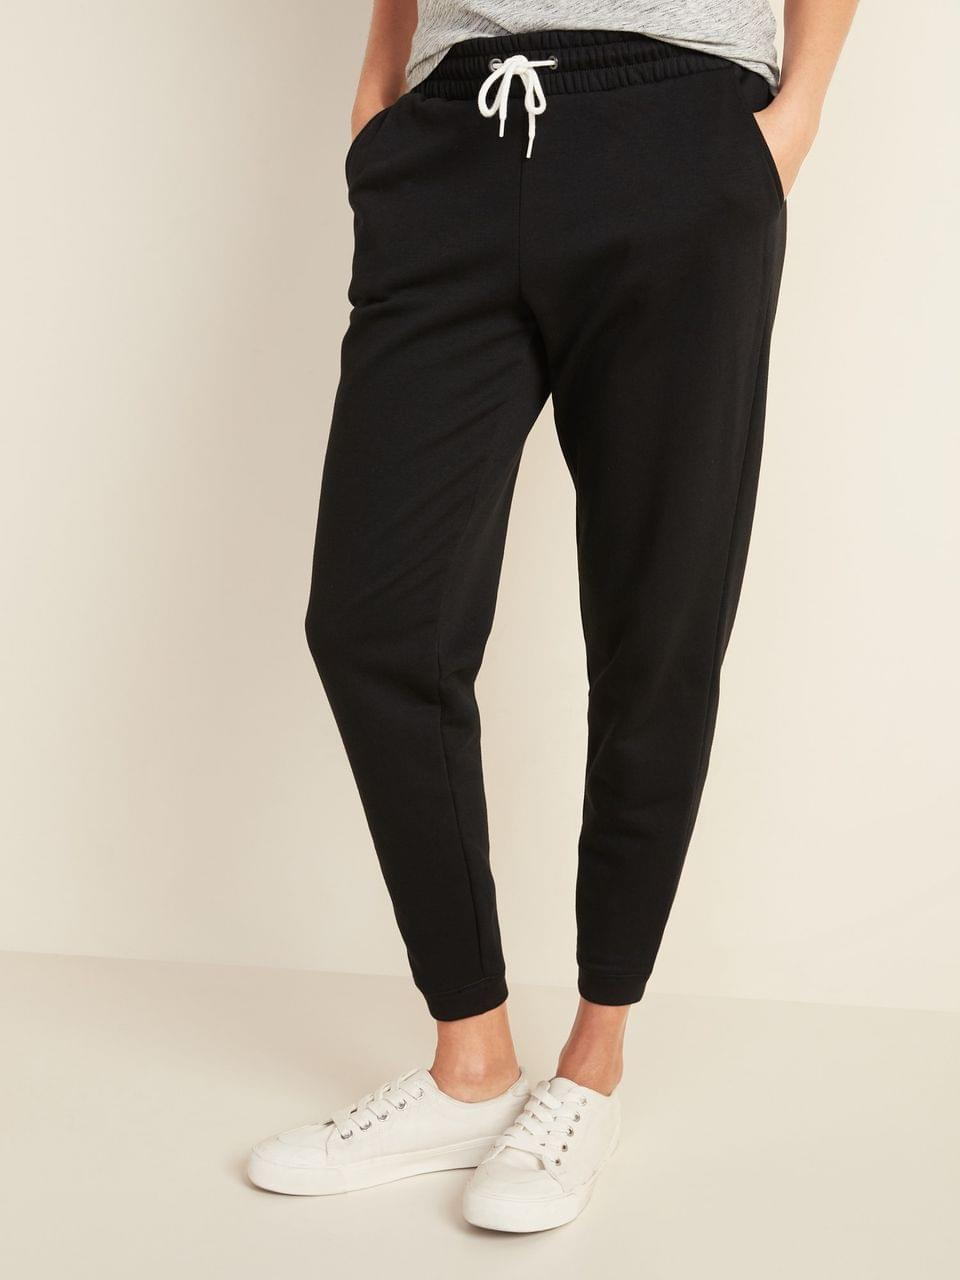 Women's French-Terry Joggers for Women